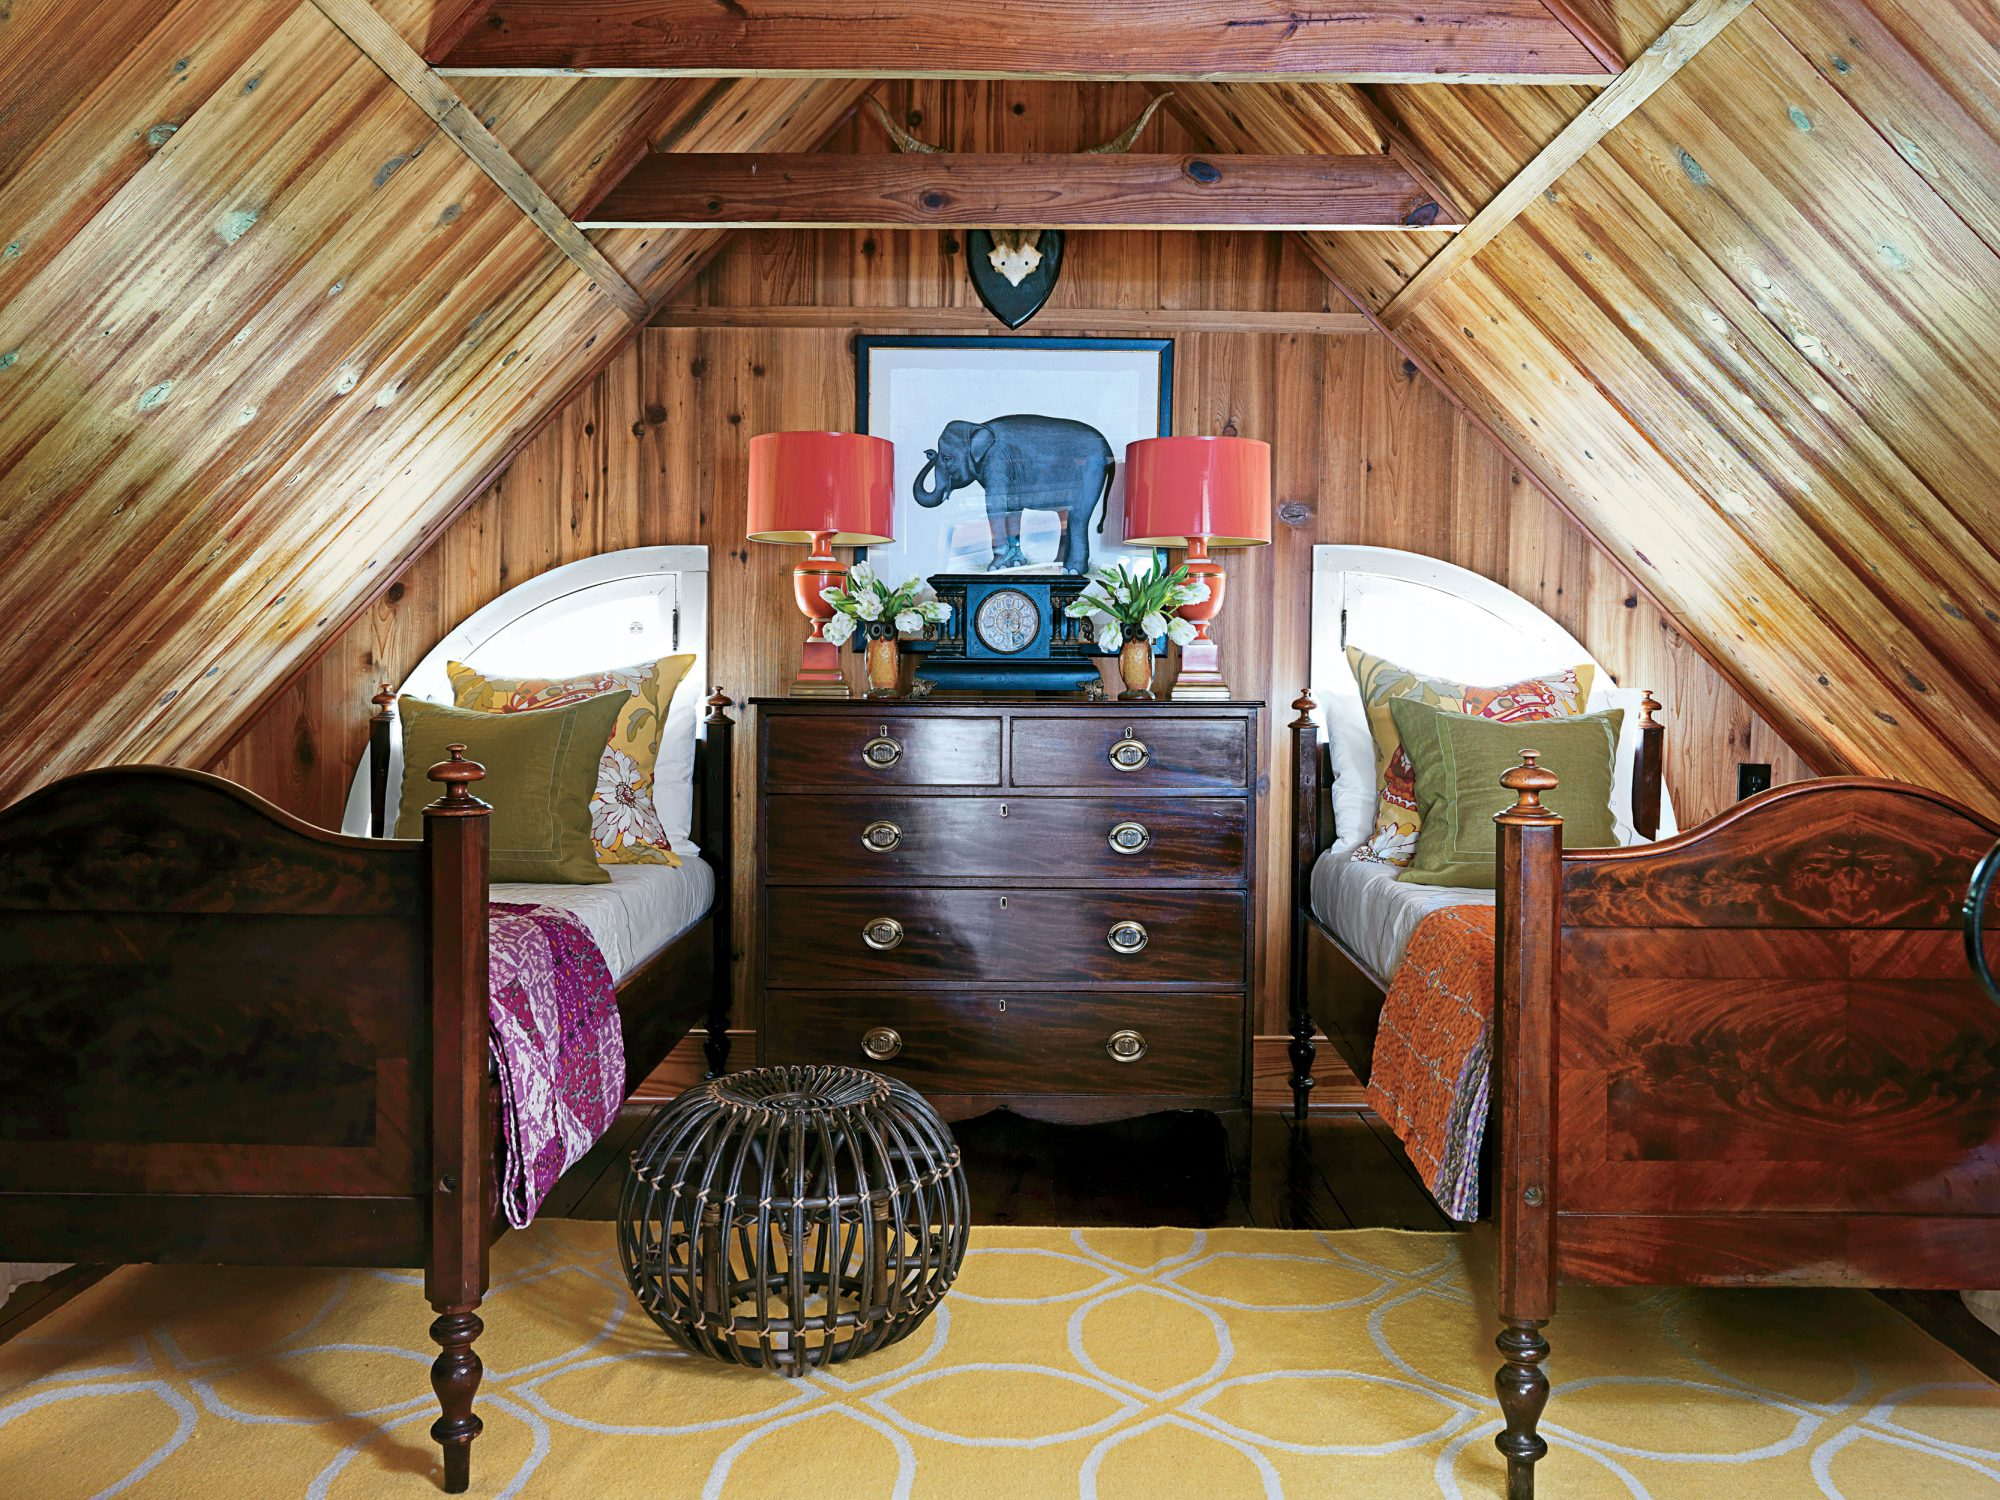 Guest Room with Global Style